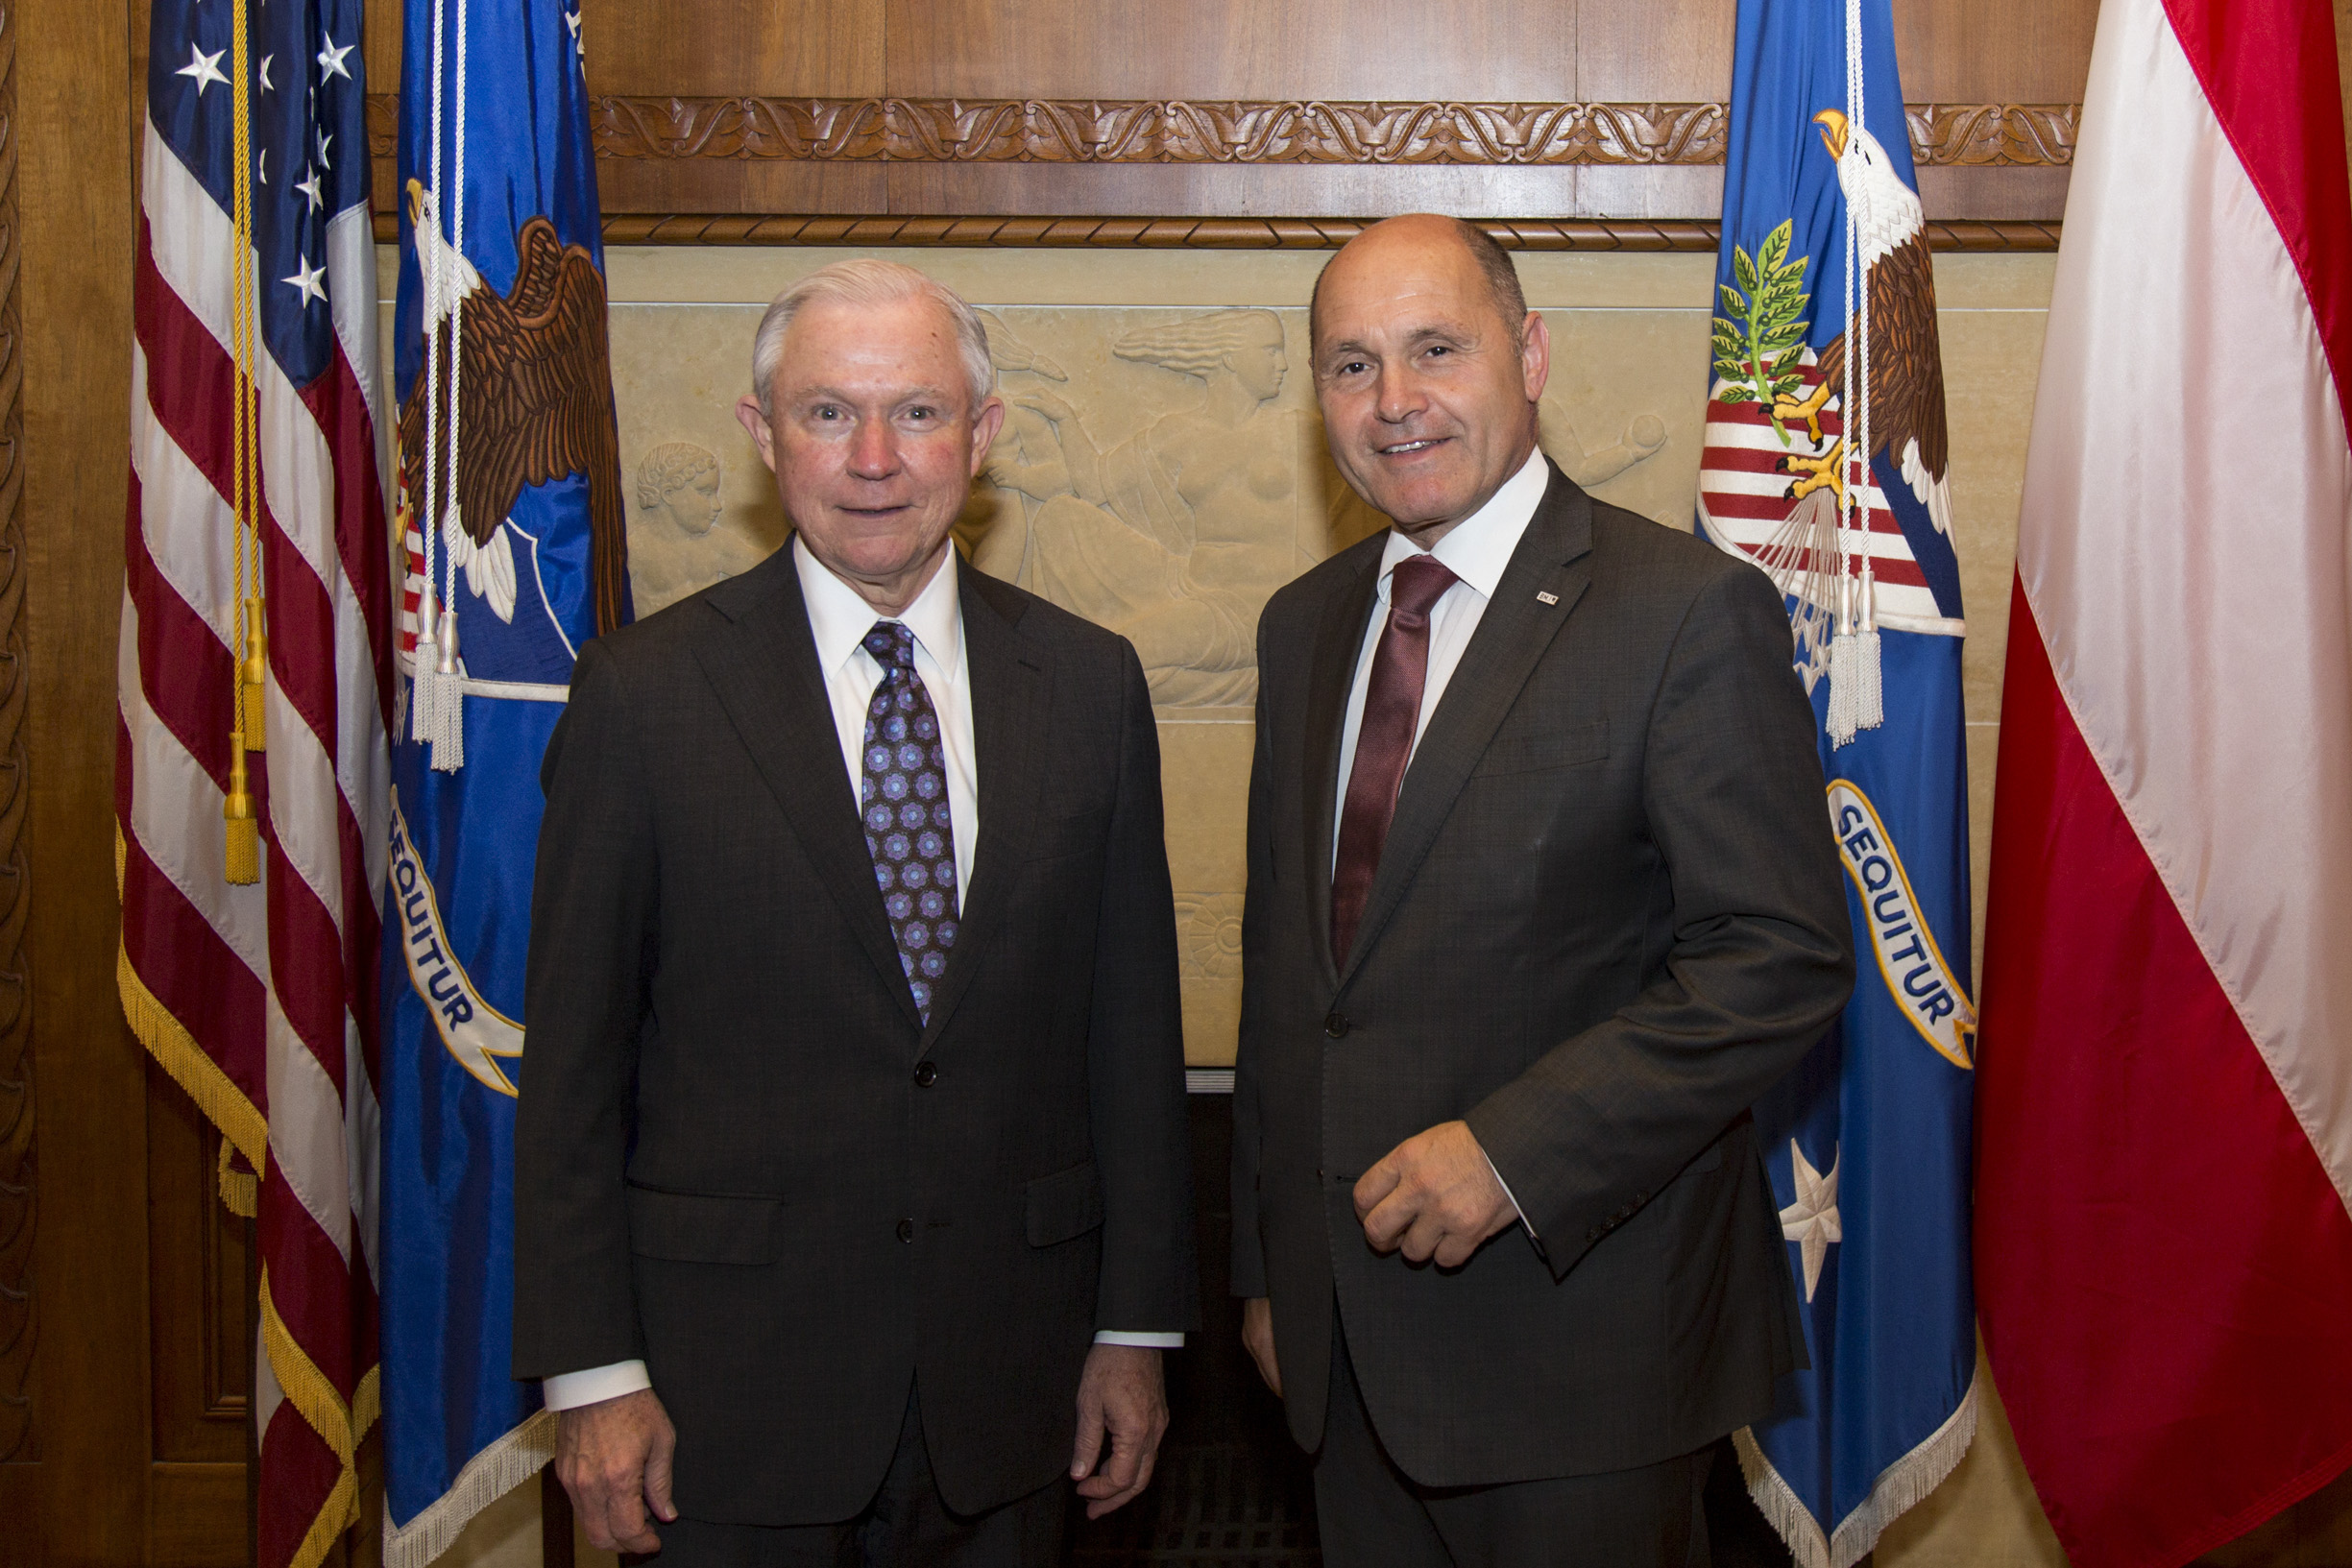 """(From left): U.S. Attorney General Jeff Sessions, Federal Minister Wolfgang Sobotka.  Photo: BMI/          96              Normal   0           false   false   false     EN-US   X-NONE   X-NONE                                                                                                                                                                                                                                                                                                                                                                                                                                                                                                                                                                                                                                                                                                                                                                                                                                                                                     /* Style Definitions */ table.MsoNormalTable {mso-style-name:""""Table Normal""""; mso-tstyle-rowband-size:0; mso-tstyle-colband-size:0; mso-style-noshow:yes; mso-style-priority:99; mso-style-parent:""""""""; mso-padding-alt:0in 5.4pt 0in 5.4pt; mso-para-margin:0in; mso-para-margin-bottom:.0001pt; mso-pagination:widow-orphan; font-size:12.0pt; font-family:Calibri; mso-ascii-font-family:Calibri; mso-ascii-theme-font:minor-latin; mso-hansi-font-family:Calibri; mso-hansi-theme-font:minor-latin;}     Jürgen Makowecz"""